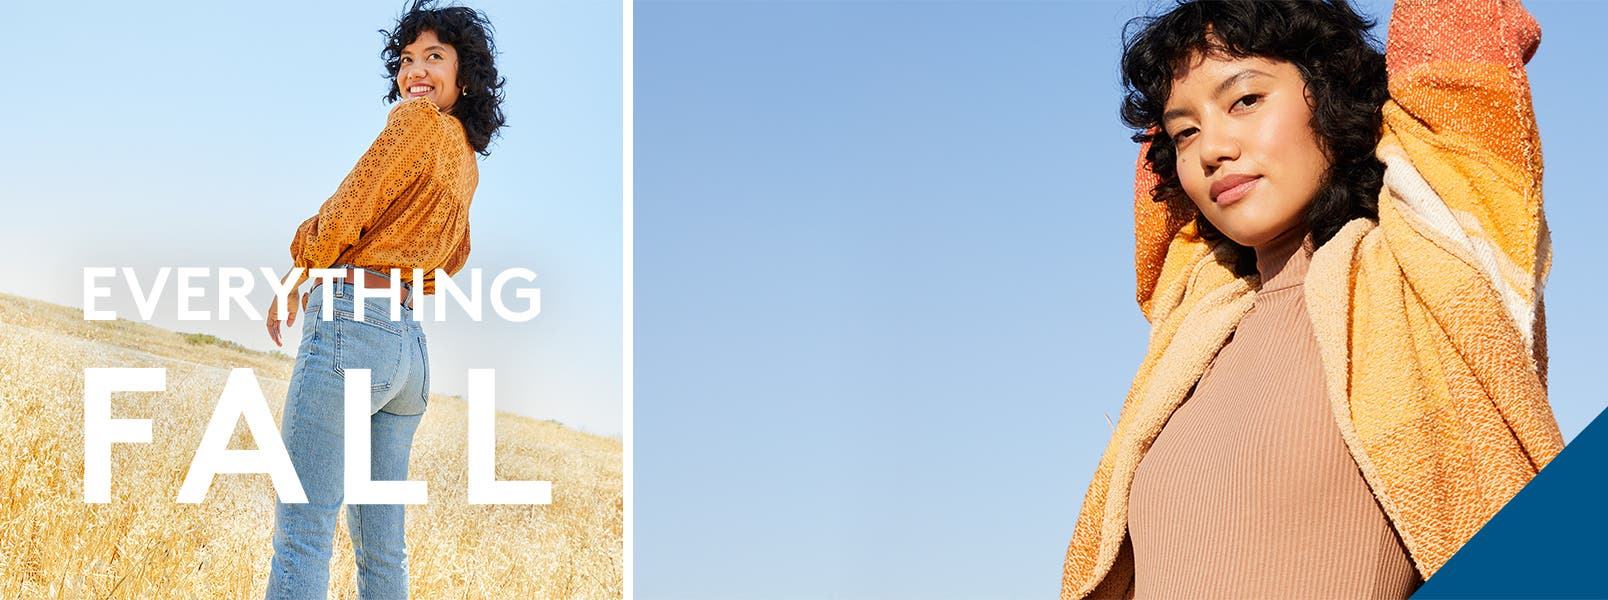 EVERYTHING FALL. All the good stuff's here—up to 50% off!